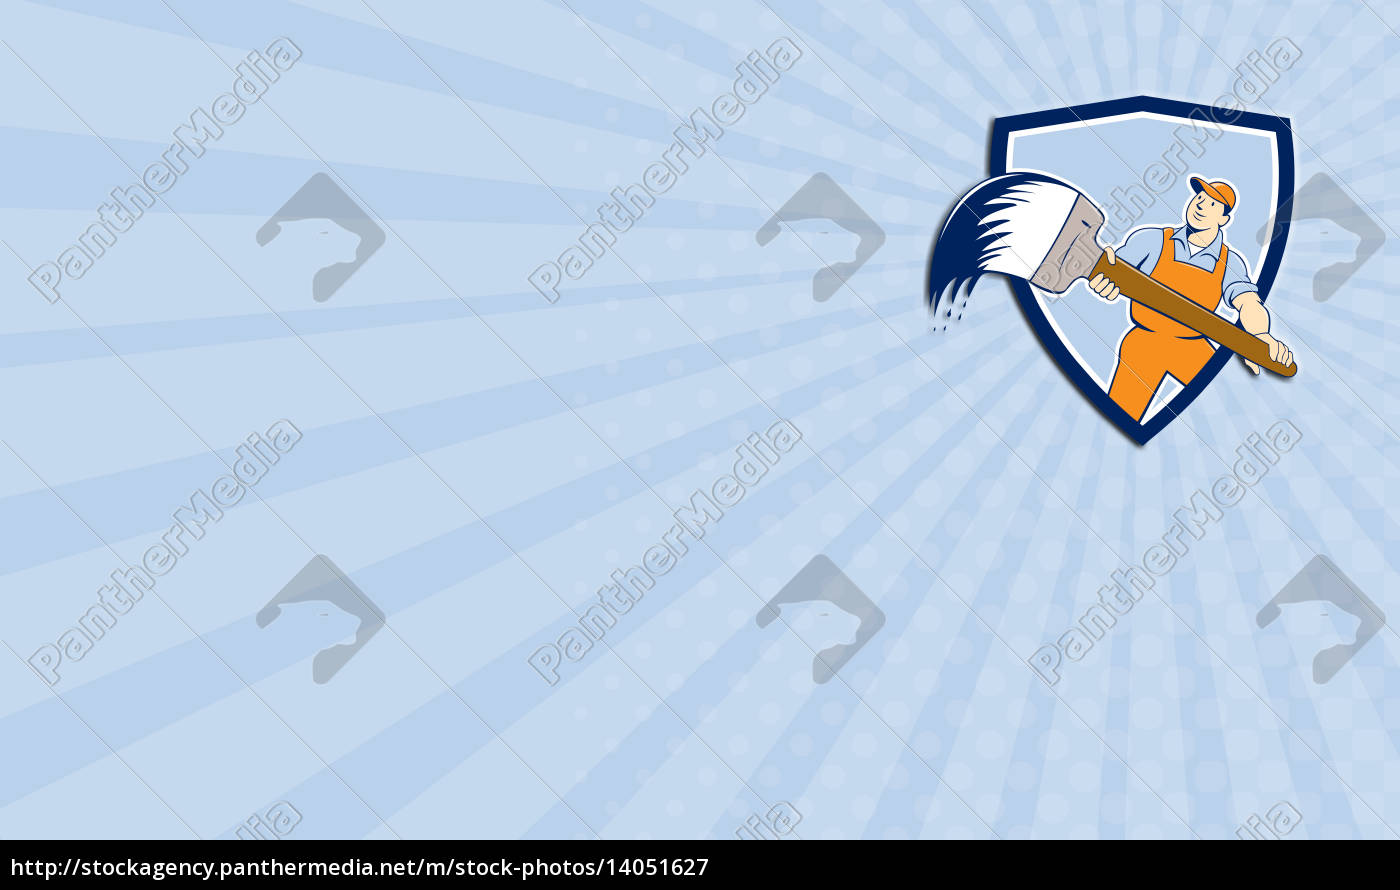 business, card, house, painter, giant, paintbrush - 14051627